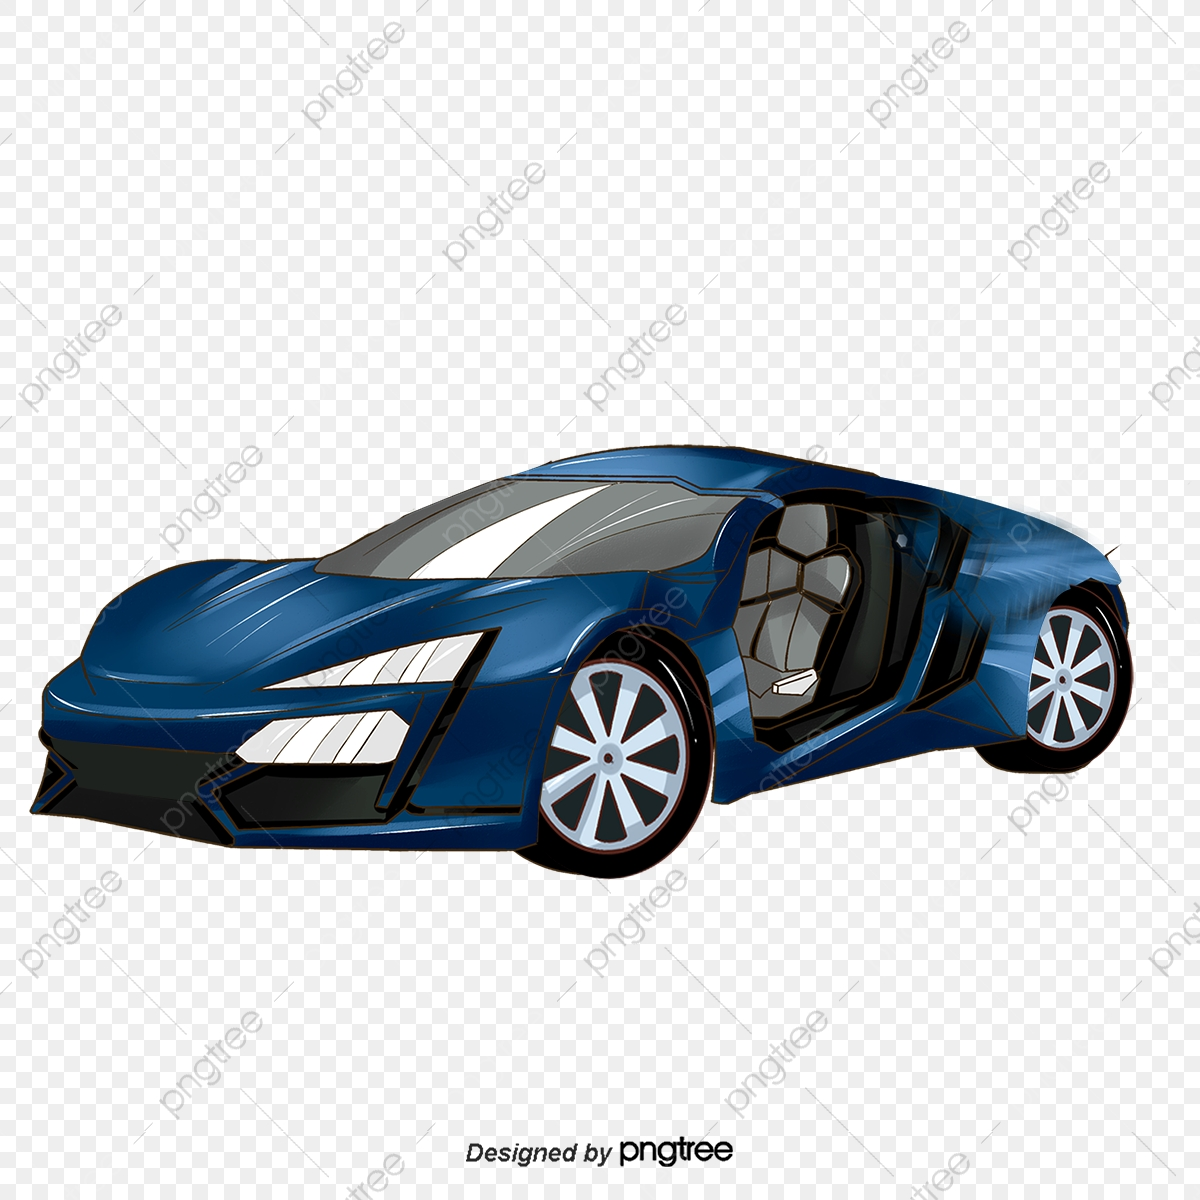 Red Sports Car Vector S Clipart Car Clipart Red Png Transparent Clipart Image And Psd File For Free Download